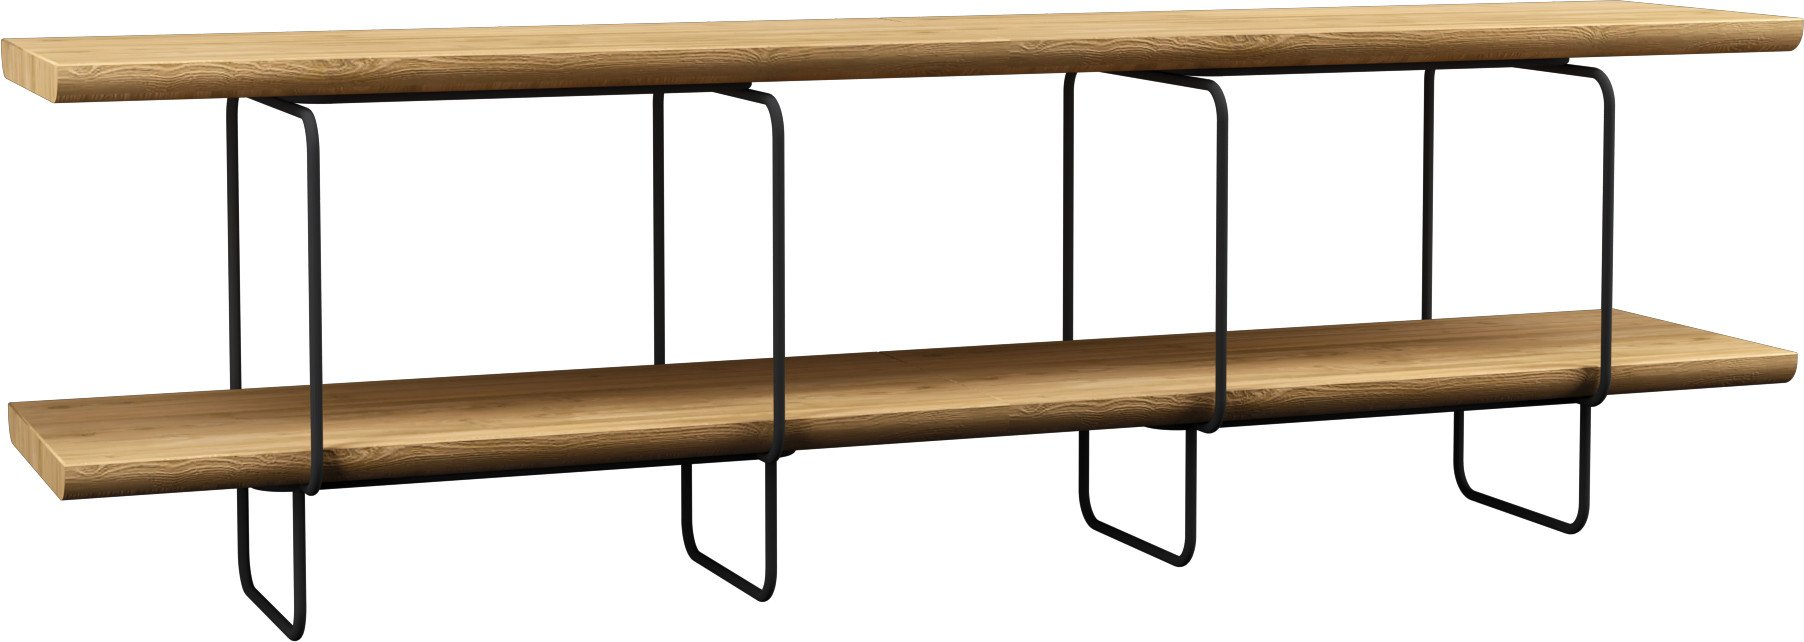 Grop IV Wall Unit Natural Oak/Black Steel by B. Pawlak & Ł. Stawarski for LOFT Decora